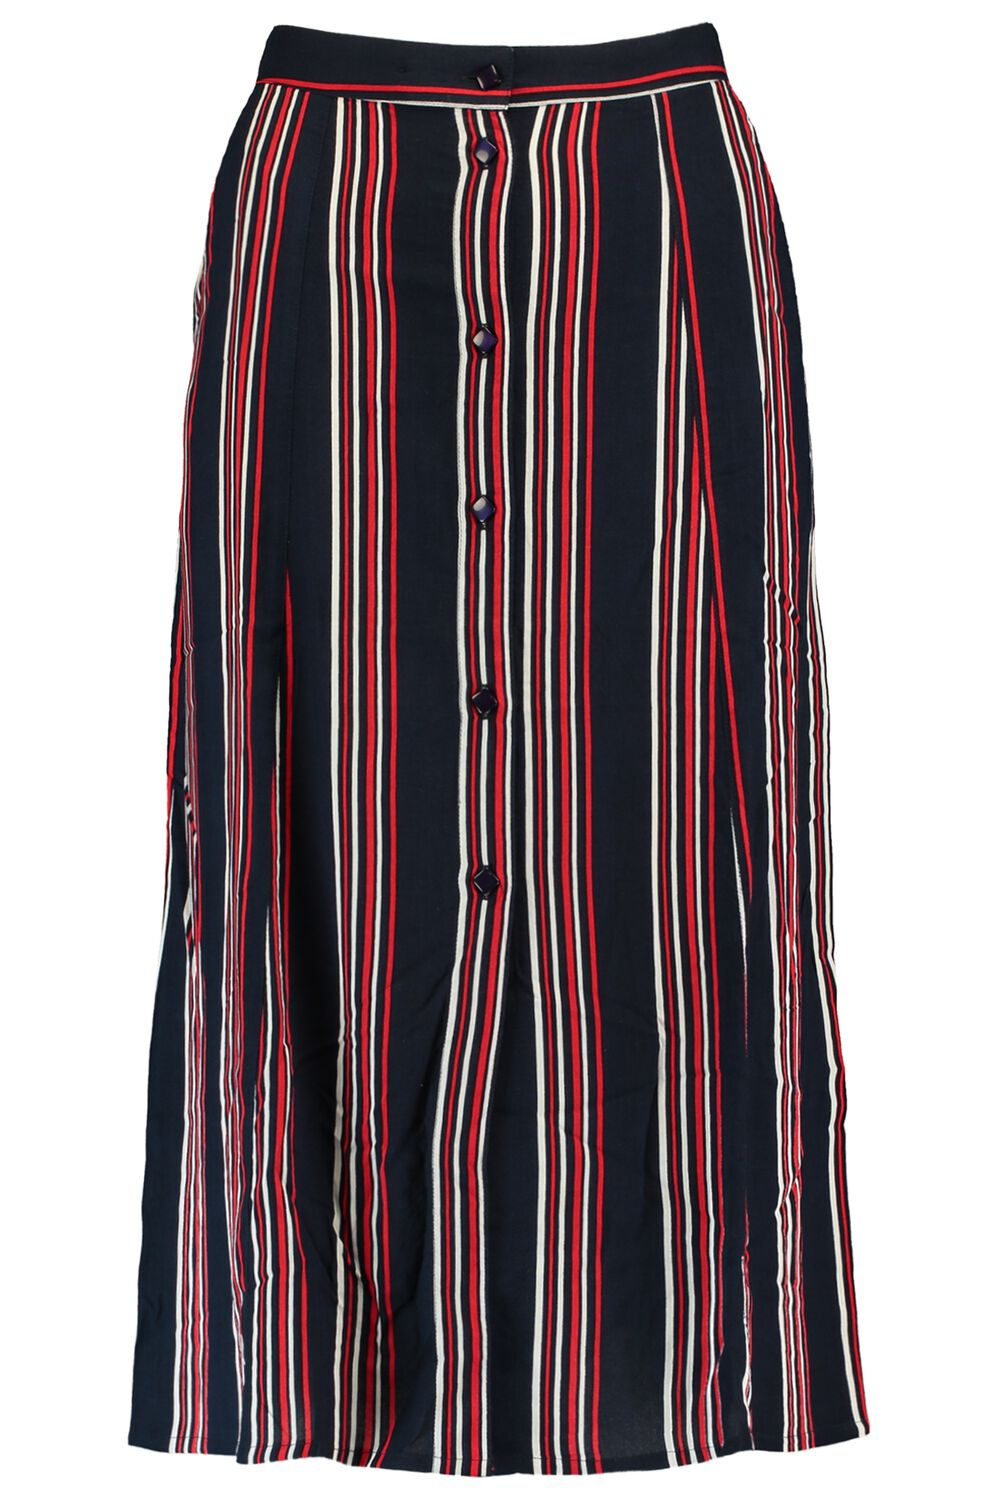 America Today Dames Rok Rayleigh Blauw